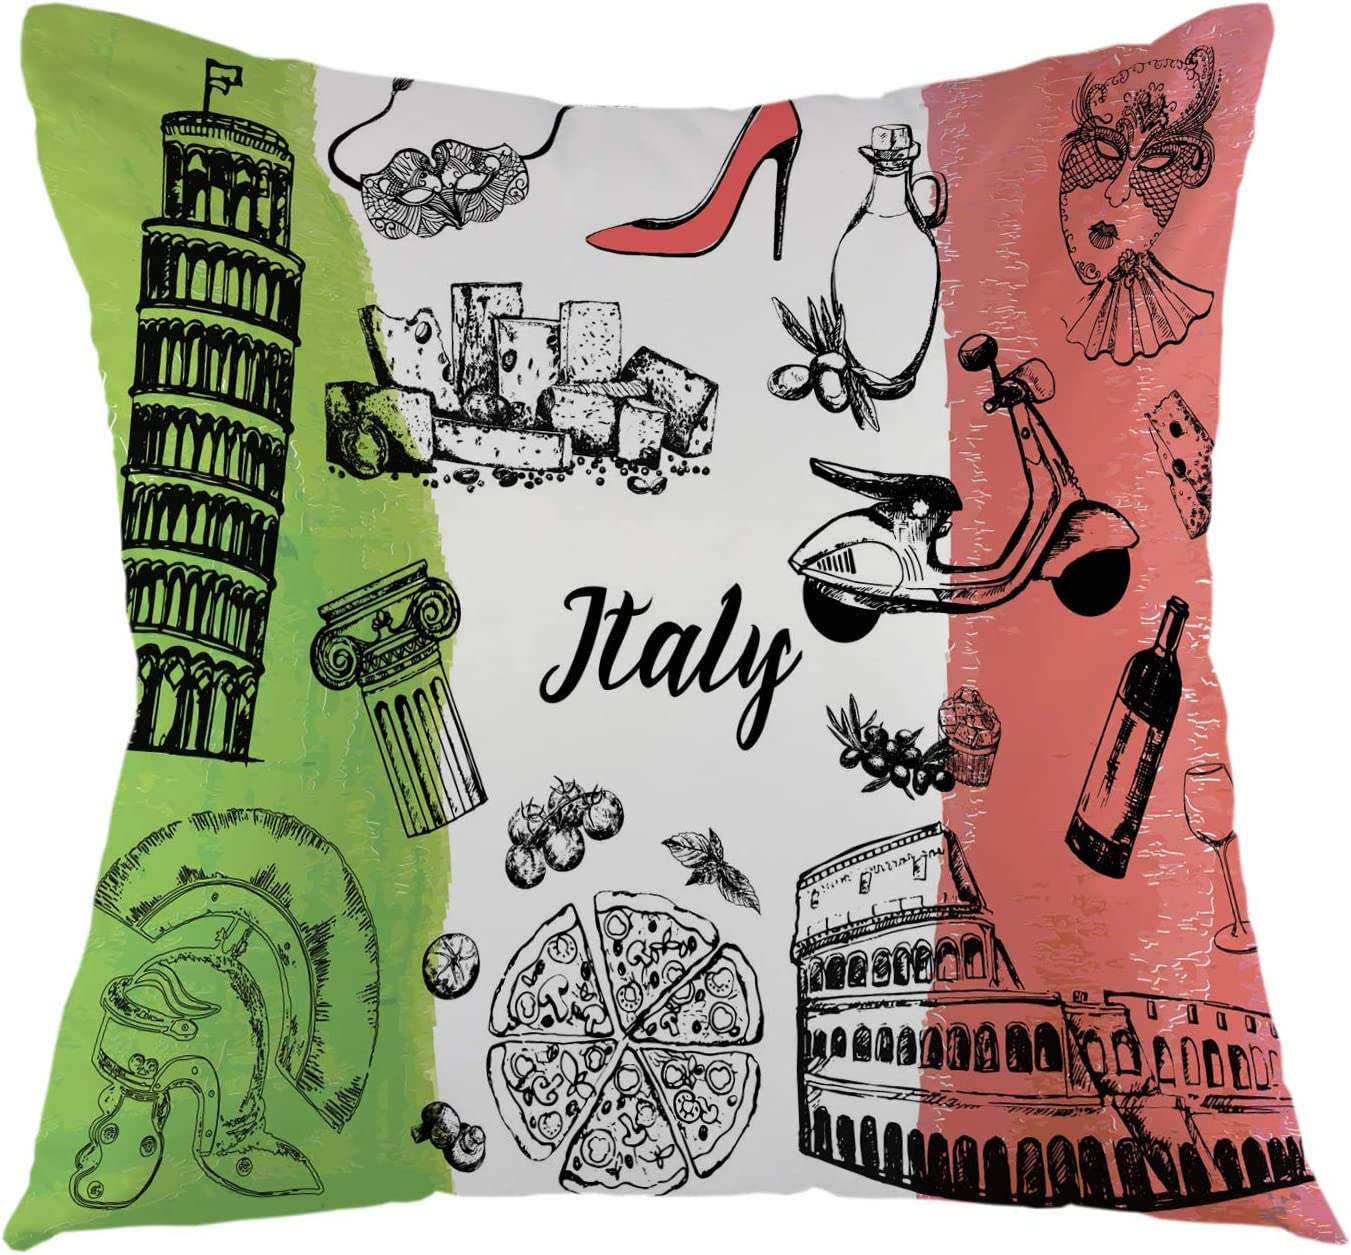 "oFloral Italy Themed Throw Pillow Cover Landmarks Food Square Cushion Case Home Decorative for Sofa Couch Car Bedroom Living Room Decor 18"" x 18"" inch Black Green Red White"